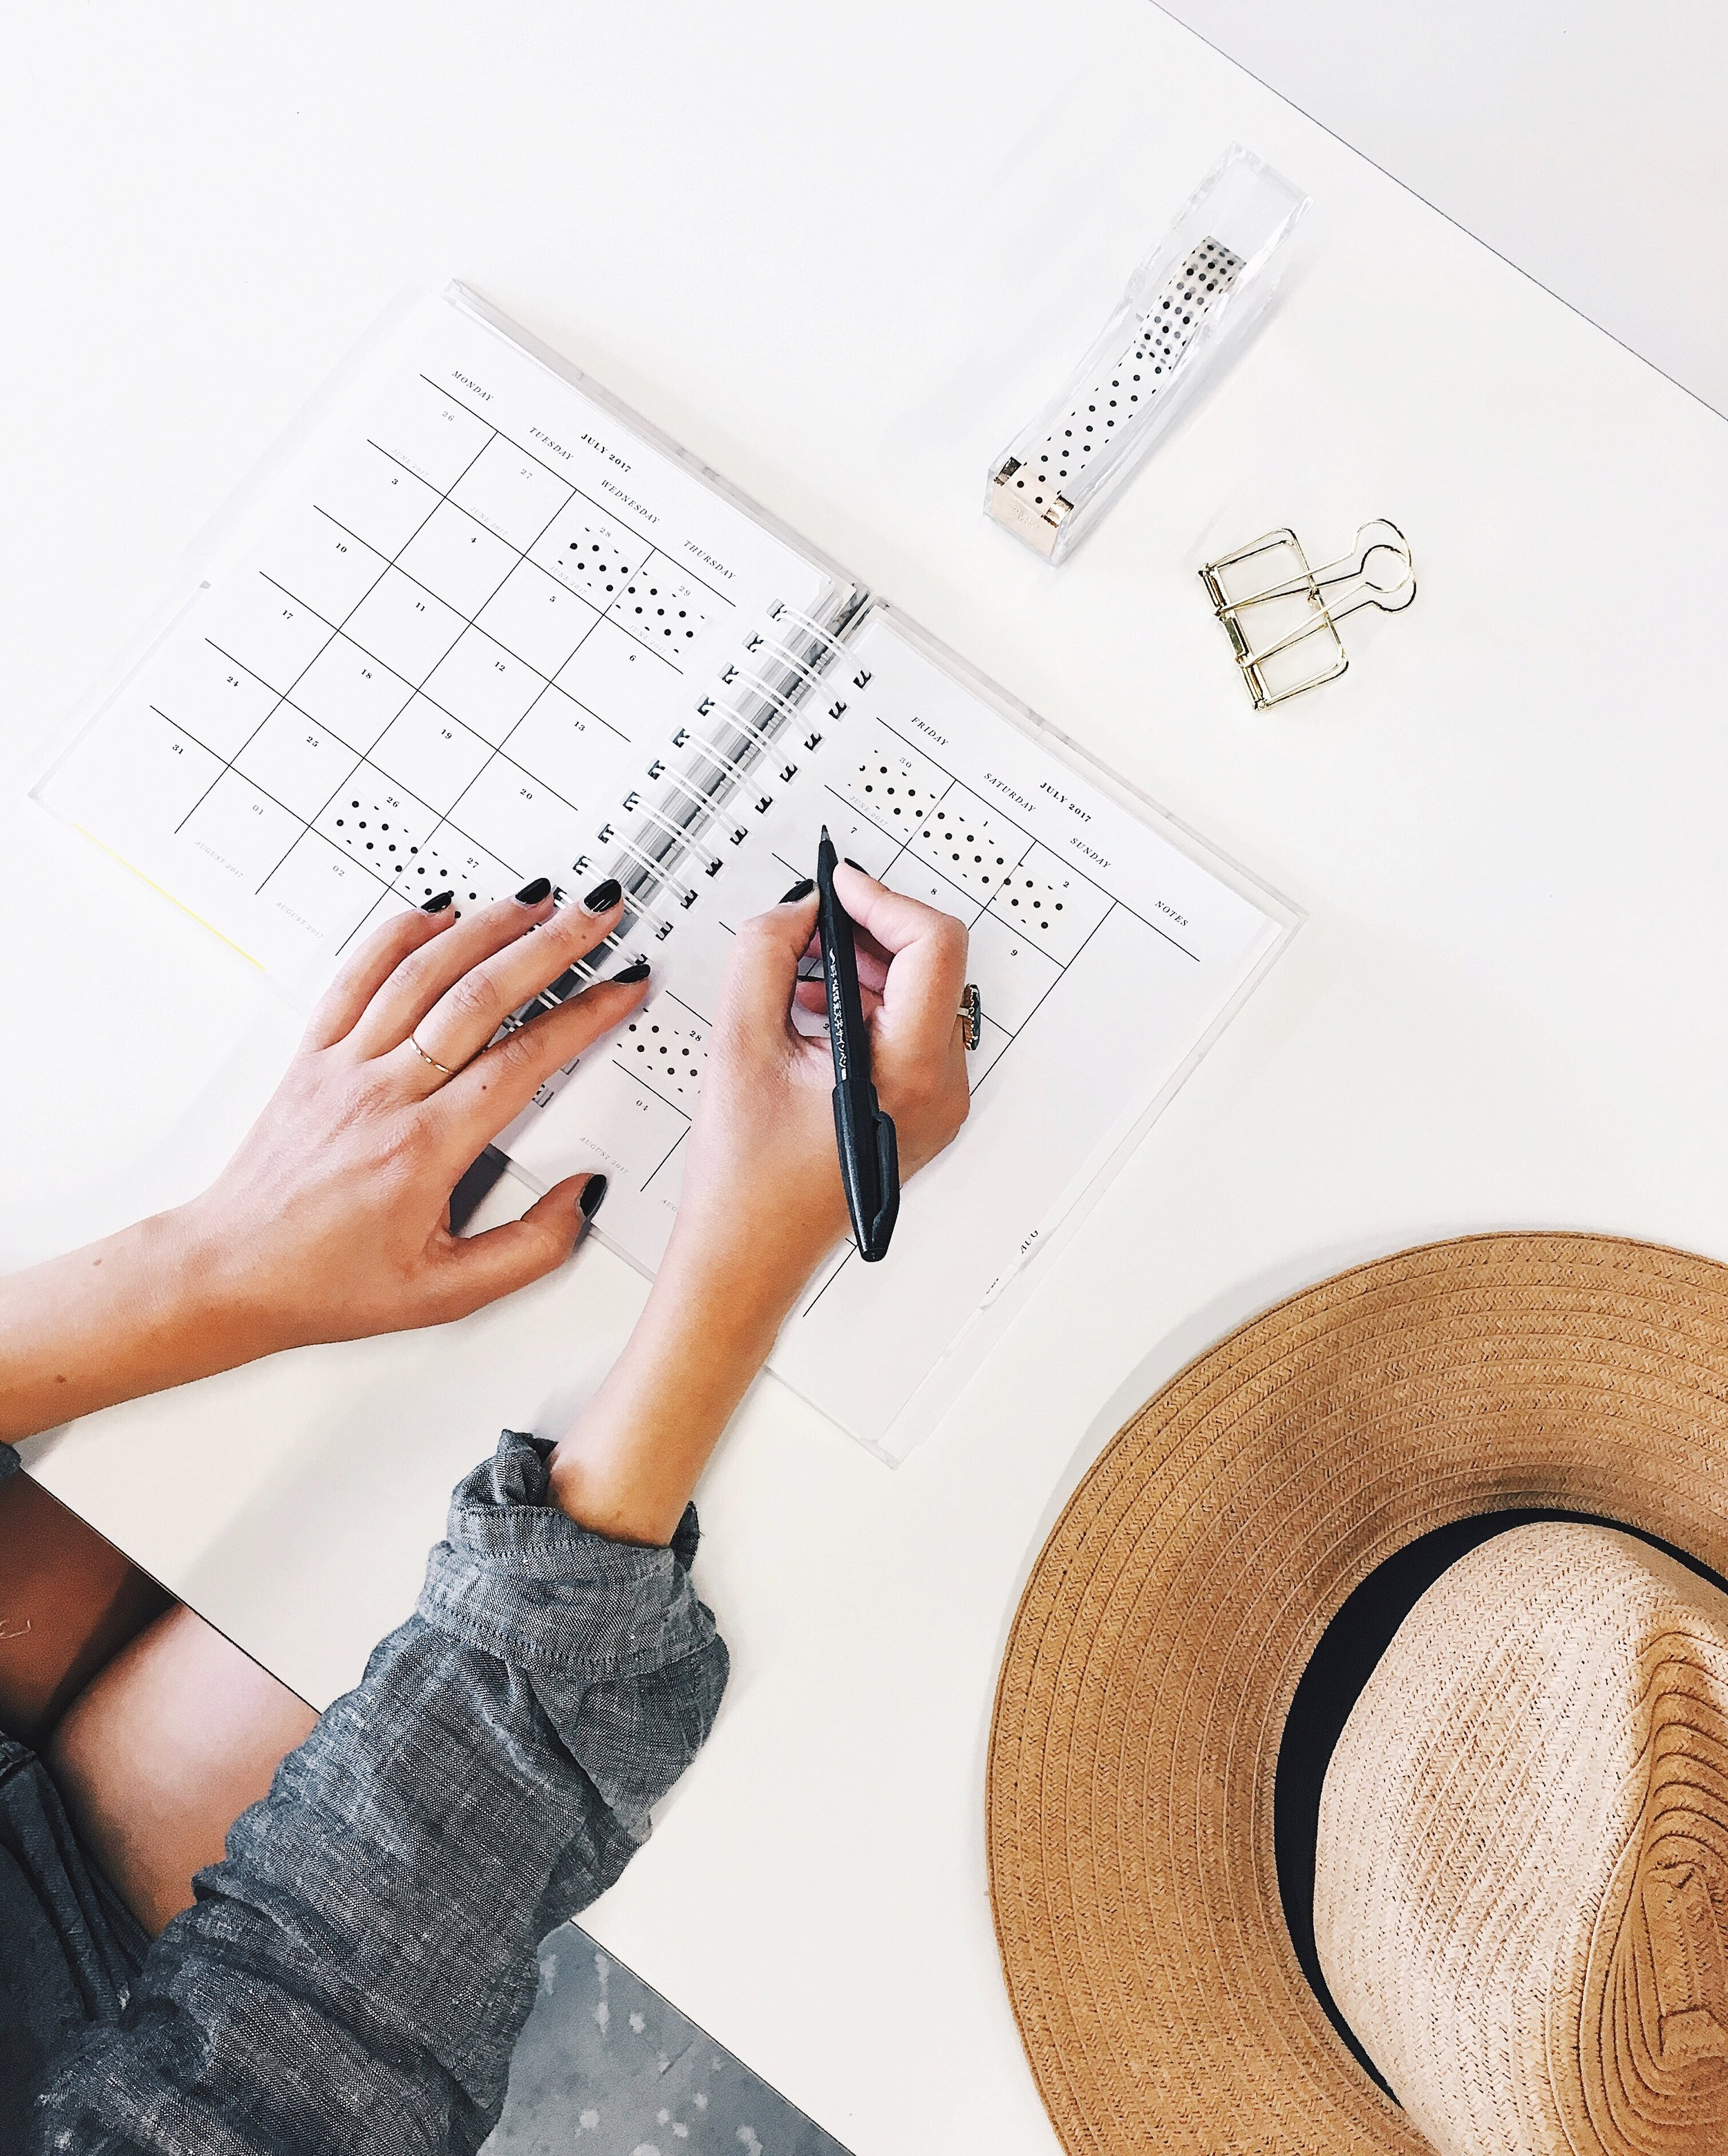 How to prepare to start a fashion business in 2018